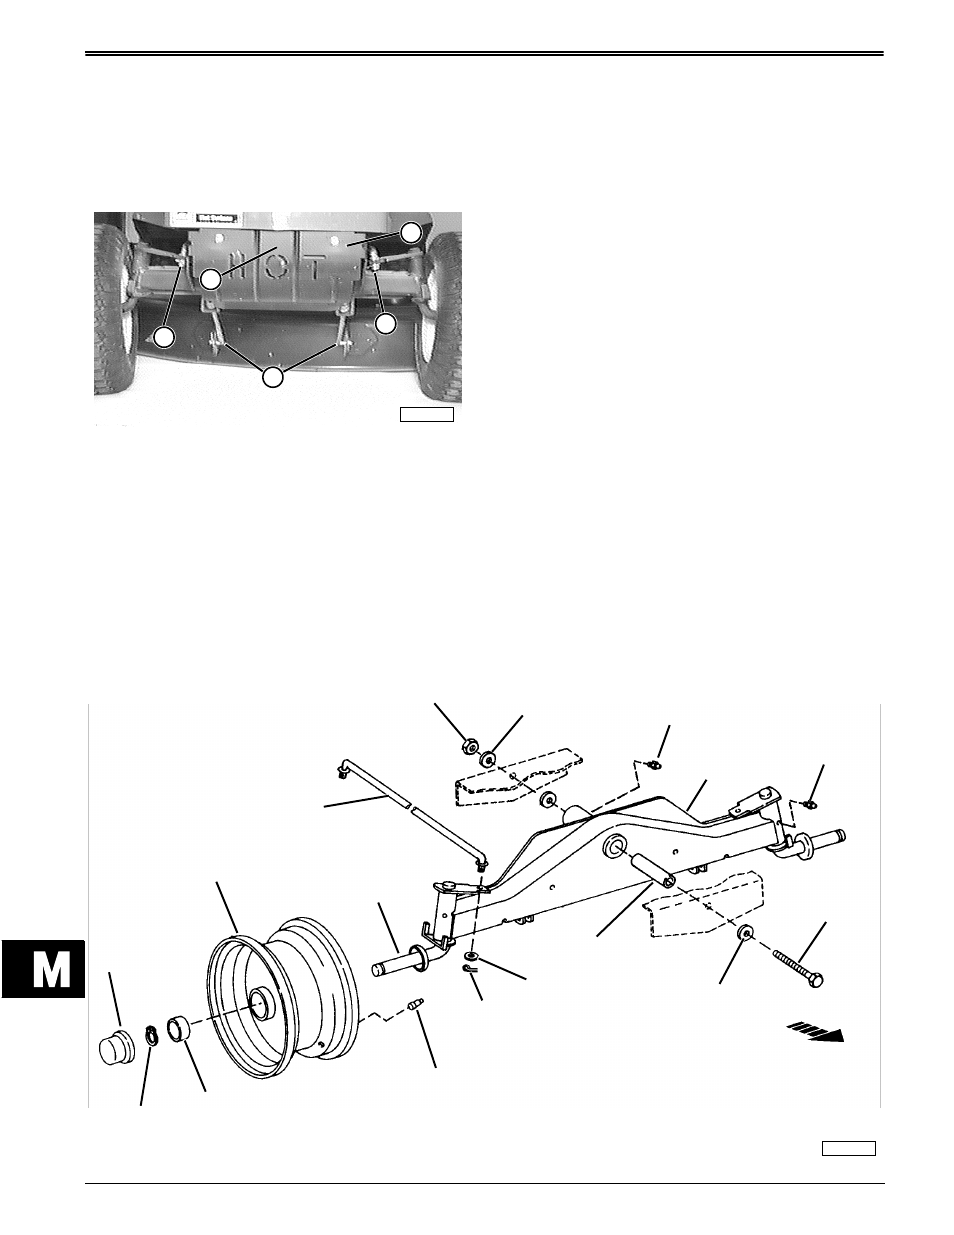 Front Axle  Front Axle Removal  U0026 Installation  Repair